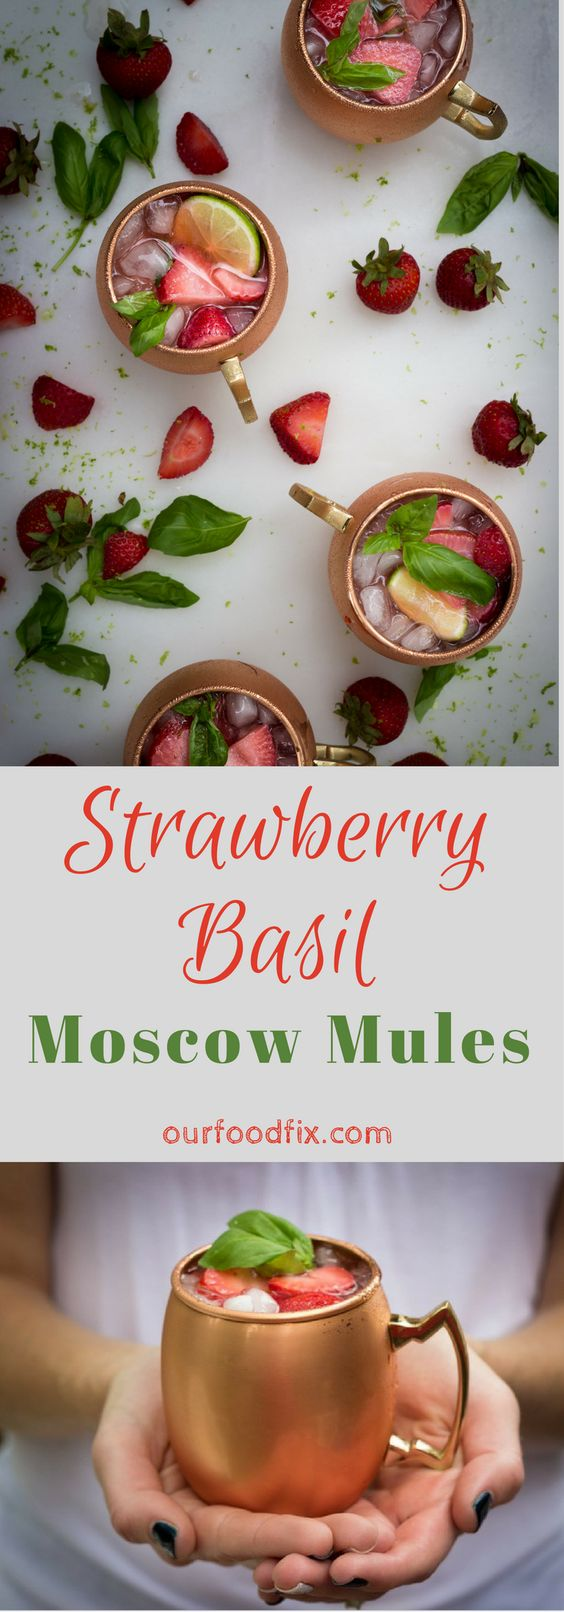 Can I eat Moscow strawberries